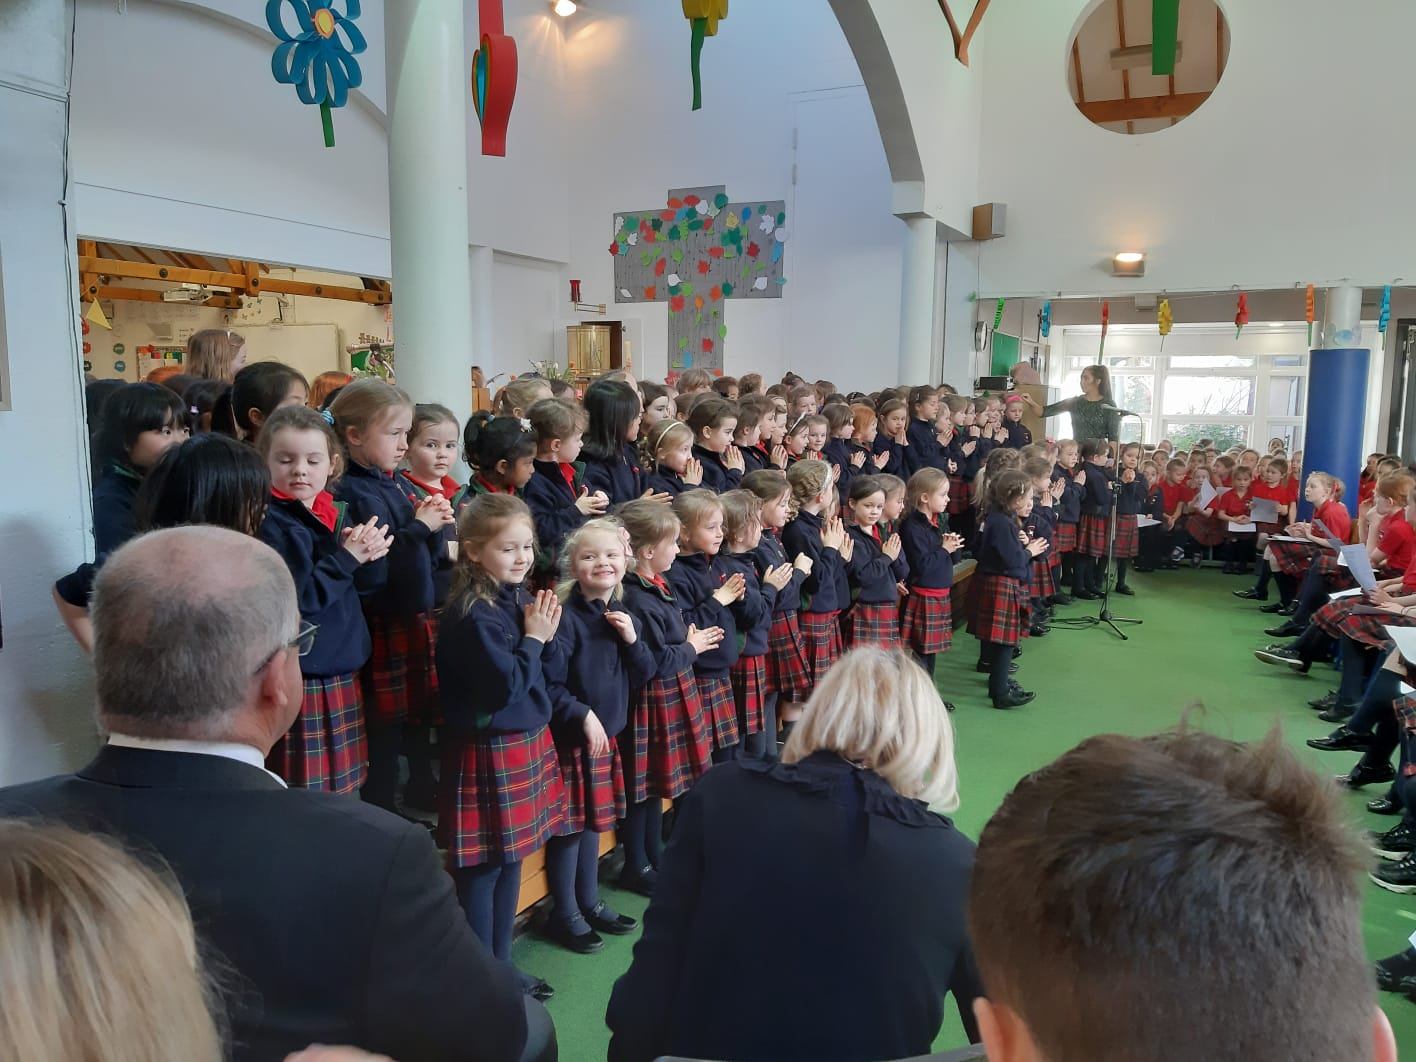 Photos from Mass and Assembly